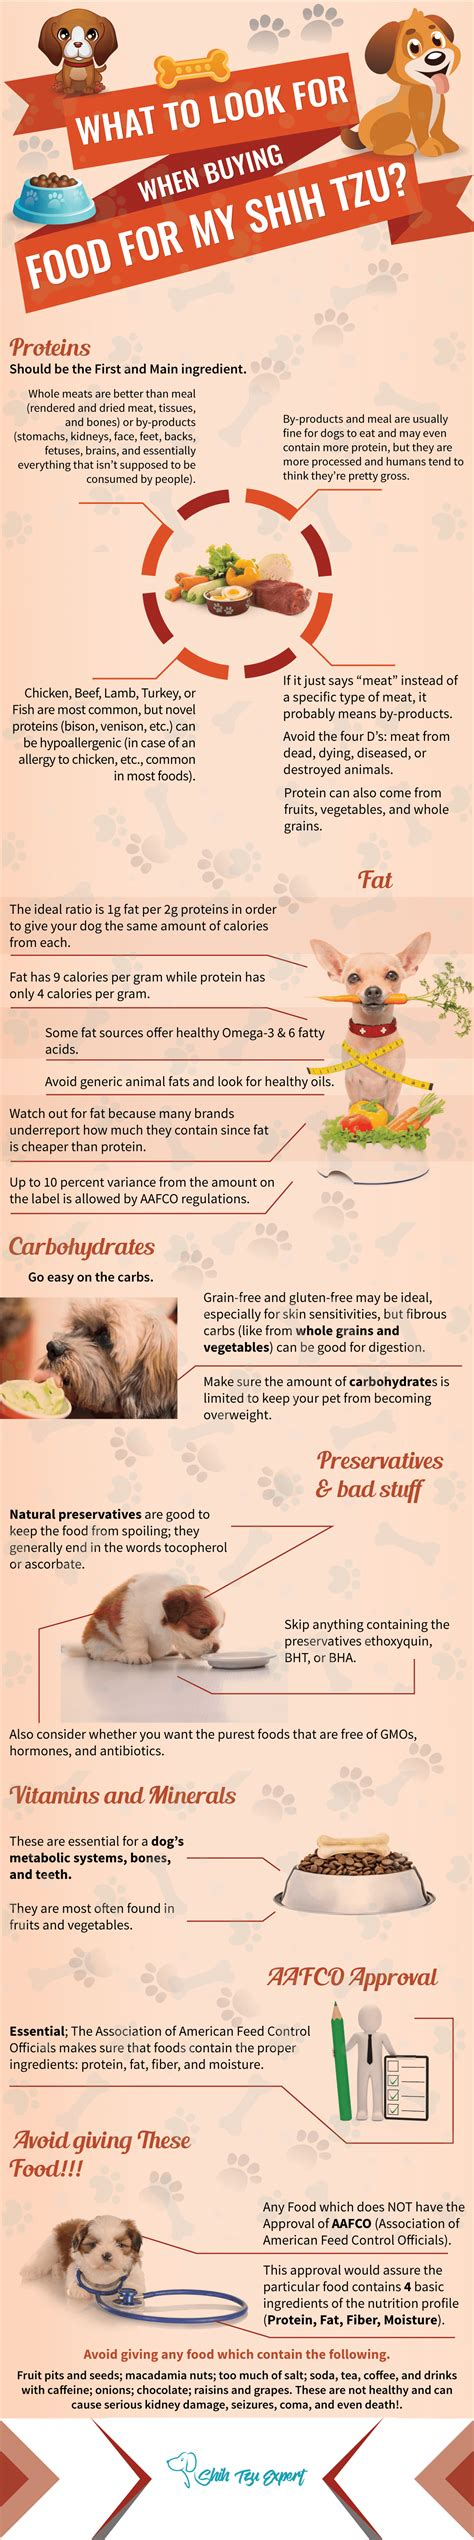 best food shih tzu how to find the best food for shih tzu